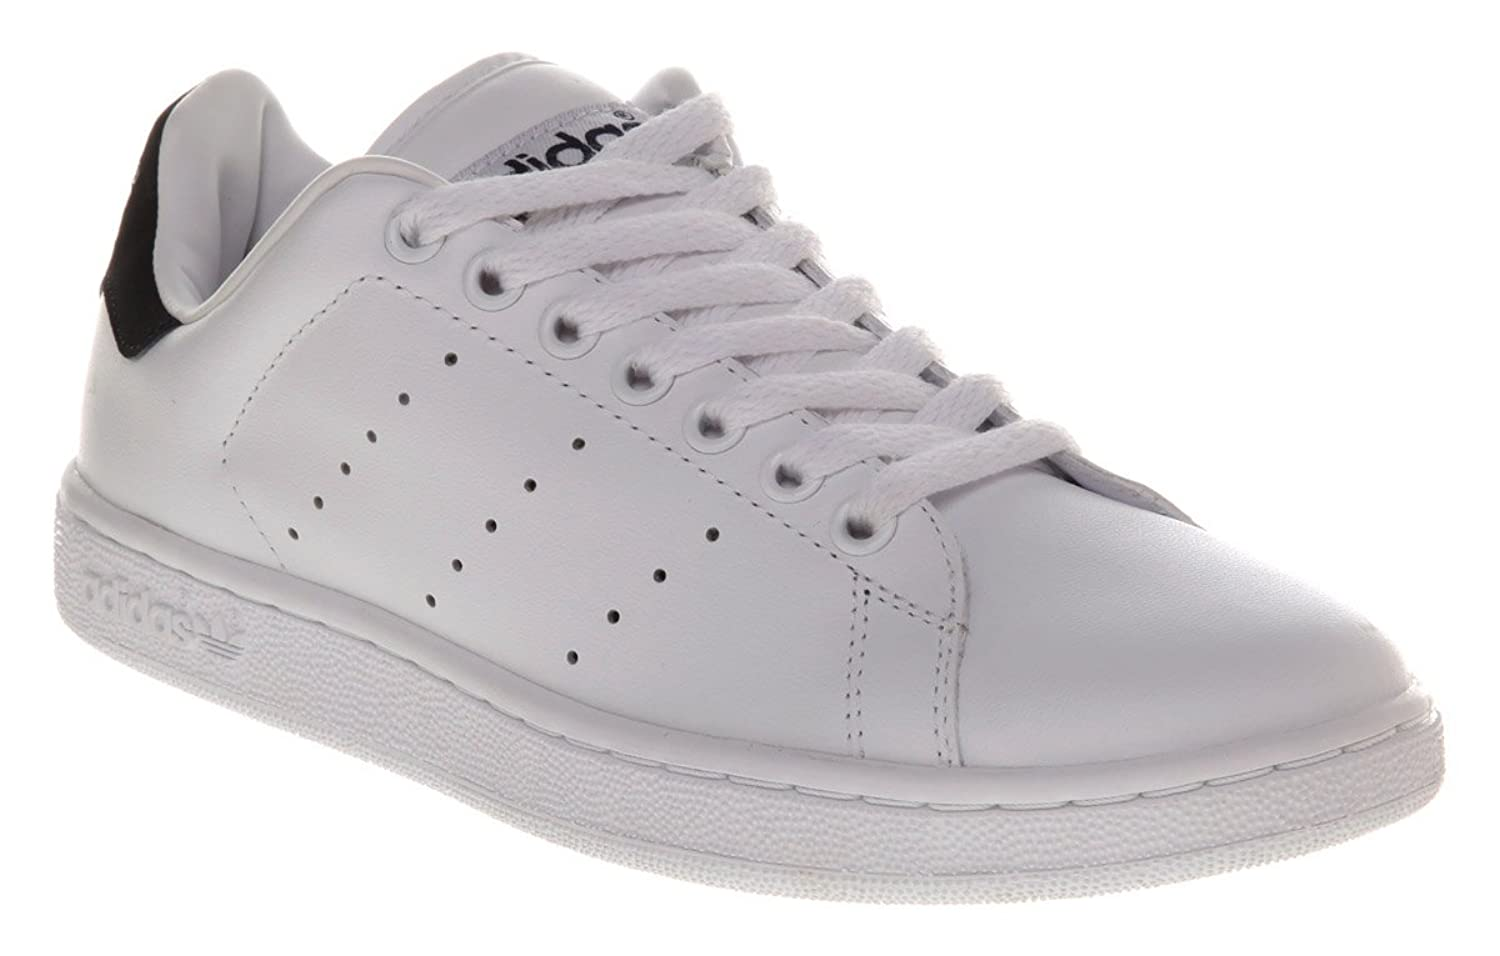 adidas stan smith avis sur la taille soldes adidas stan smith avis sur la taille chaussures. Black Bedroom Furniture Sets. Home Design Ideas